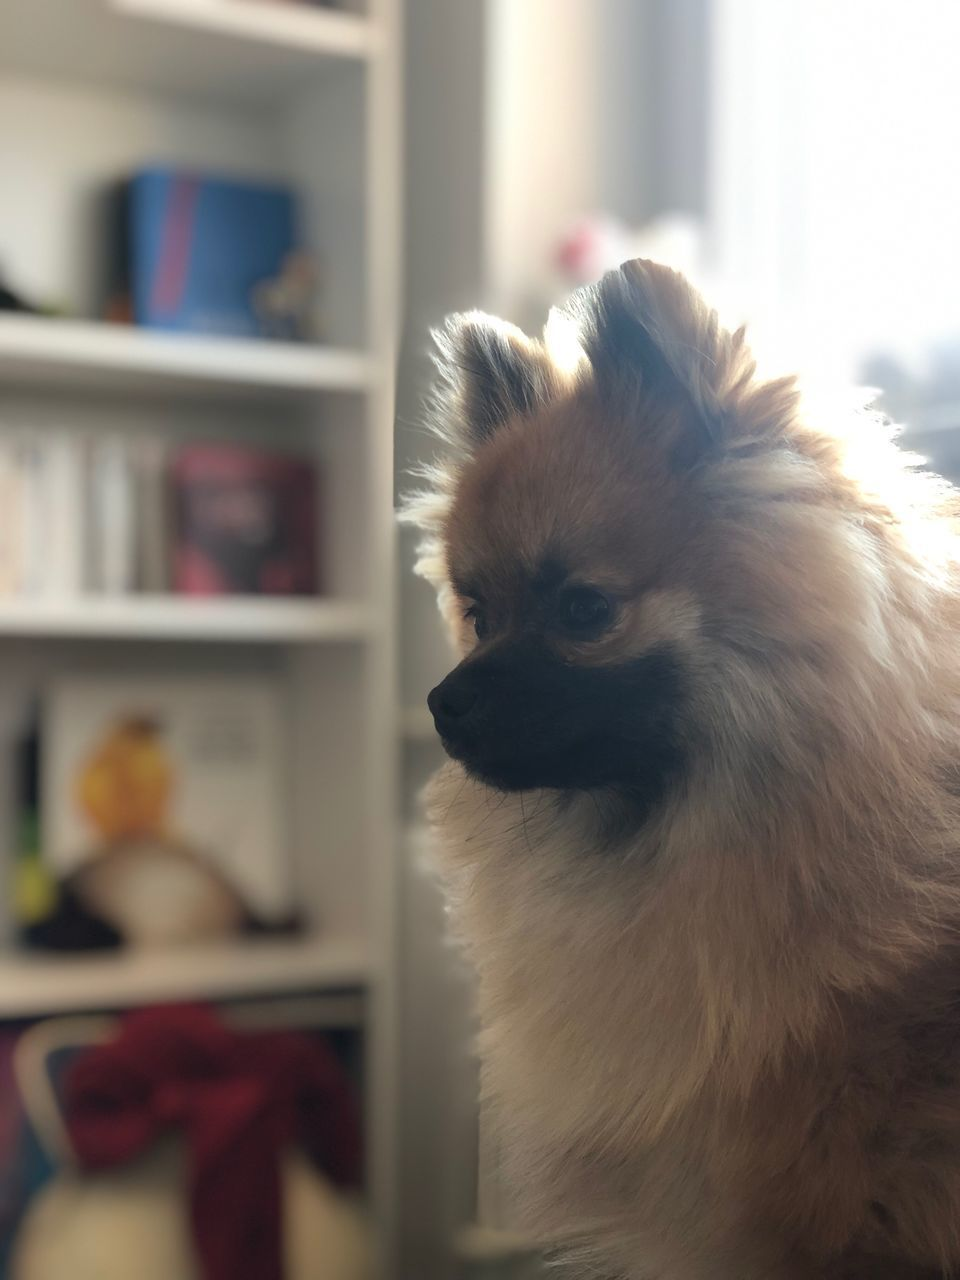 domestic, mammal, pets, domestic animals, animal themes, one animal, animal, canine, dog, vertebrate, indoors, no people, home interior, focus on foreground, pomeranian, lap dog, close-up, selective focus, animal hair, looking away, small, animal head, chihuahua - dog